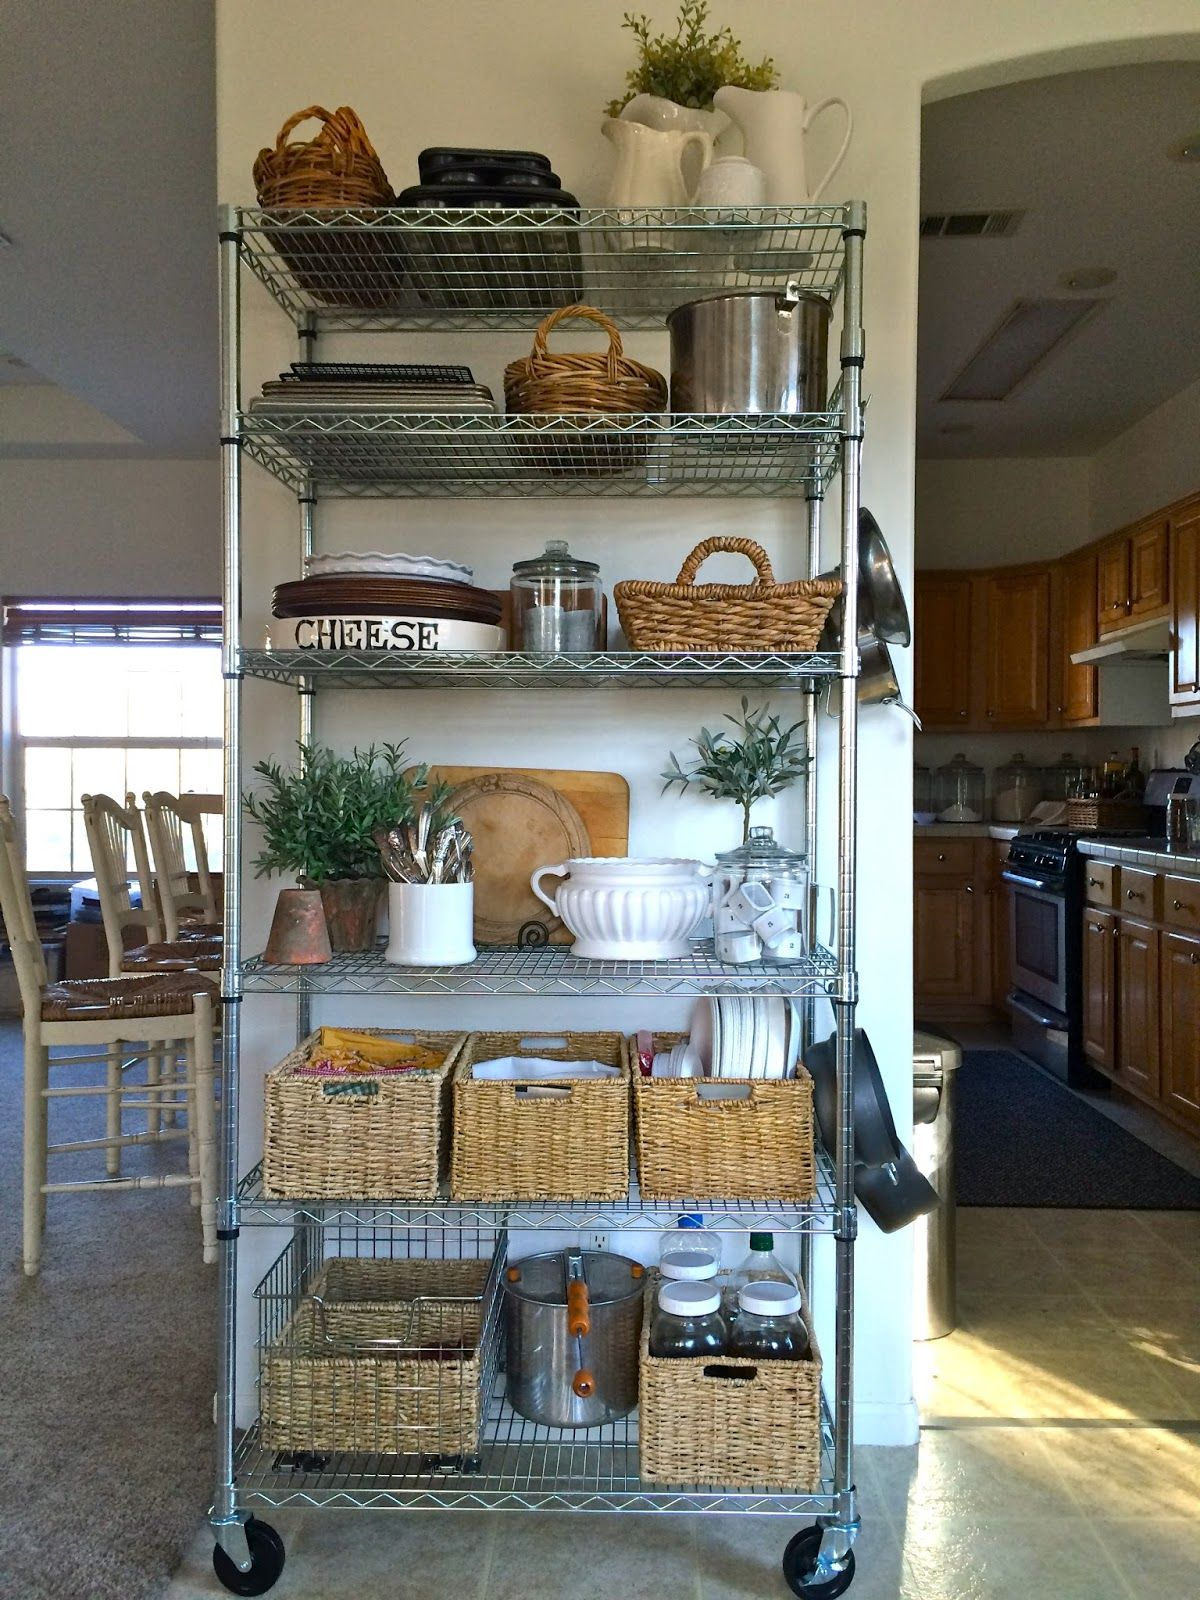 Creating A Pantry   Metal Bakeru0027s Racks And Baskets Are The Perfect Fix For  Creating Your